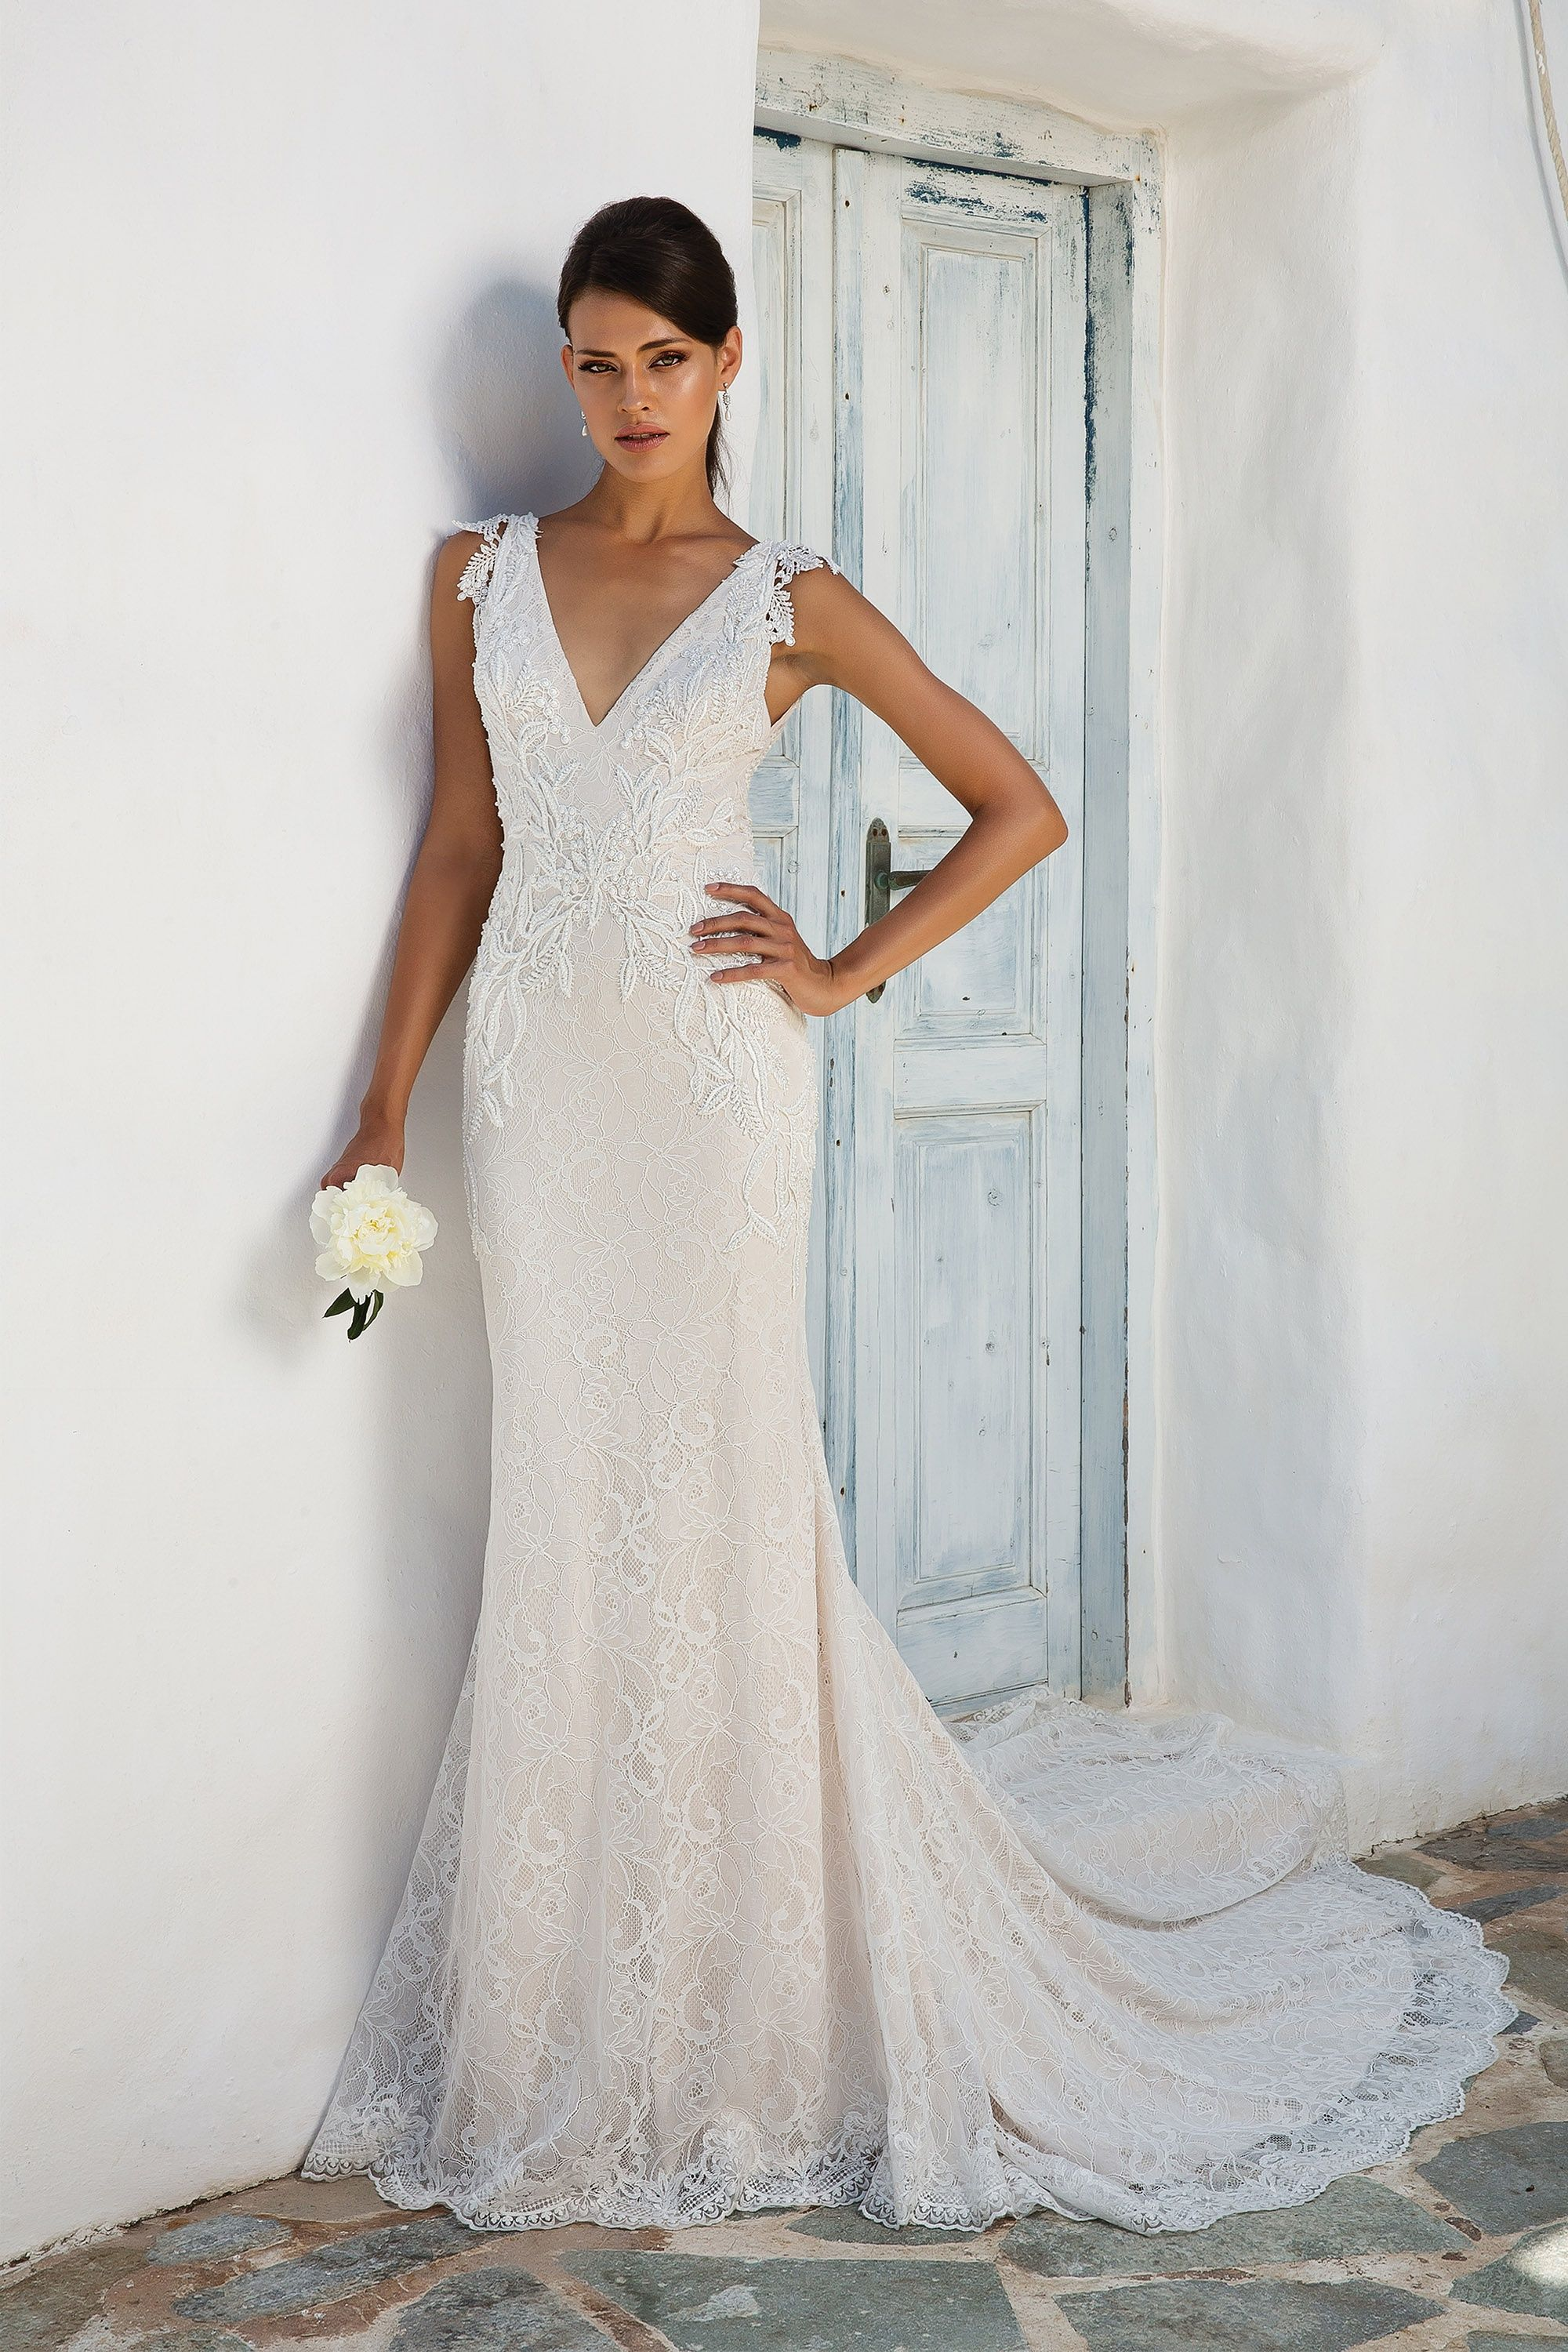 Romantic chantilly lace gown with beaded lace appliqués vneck and